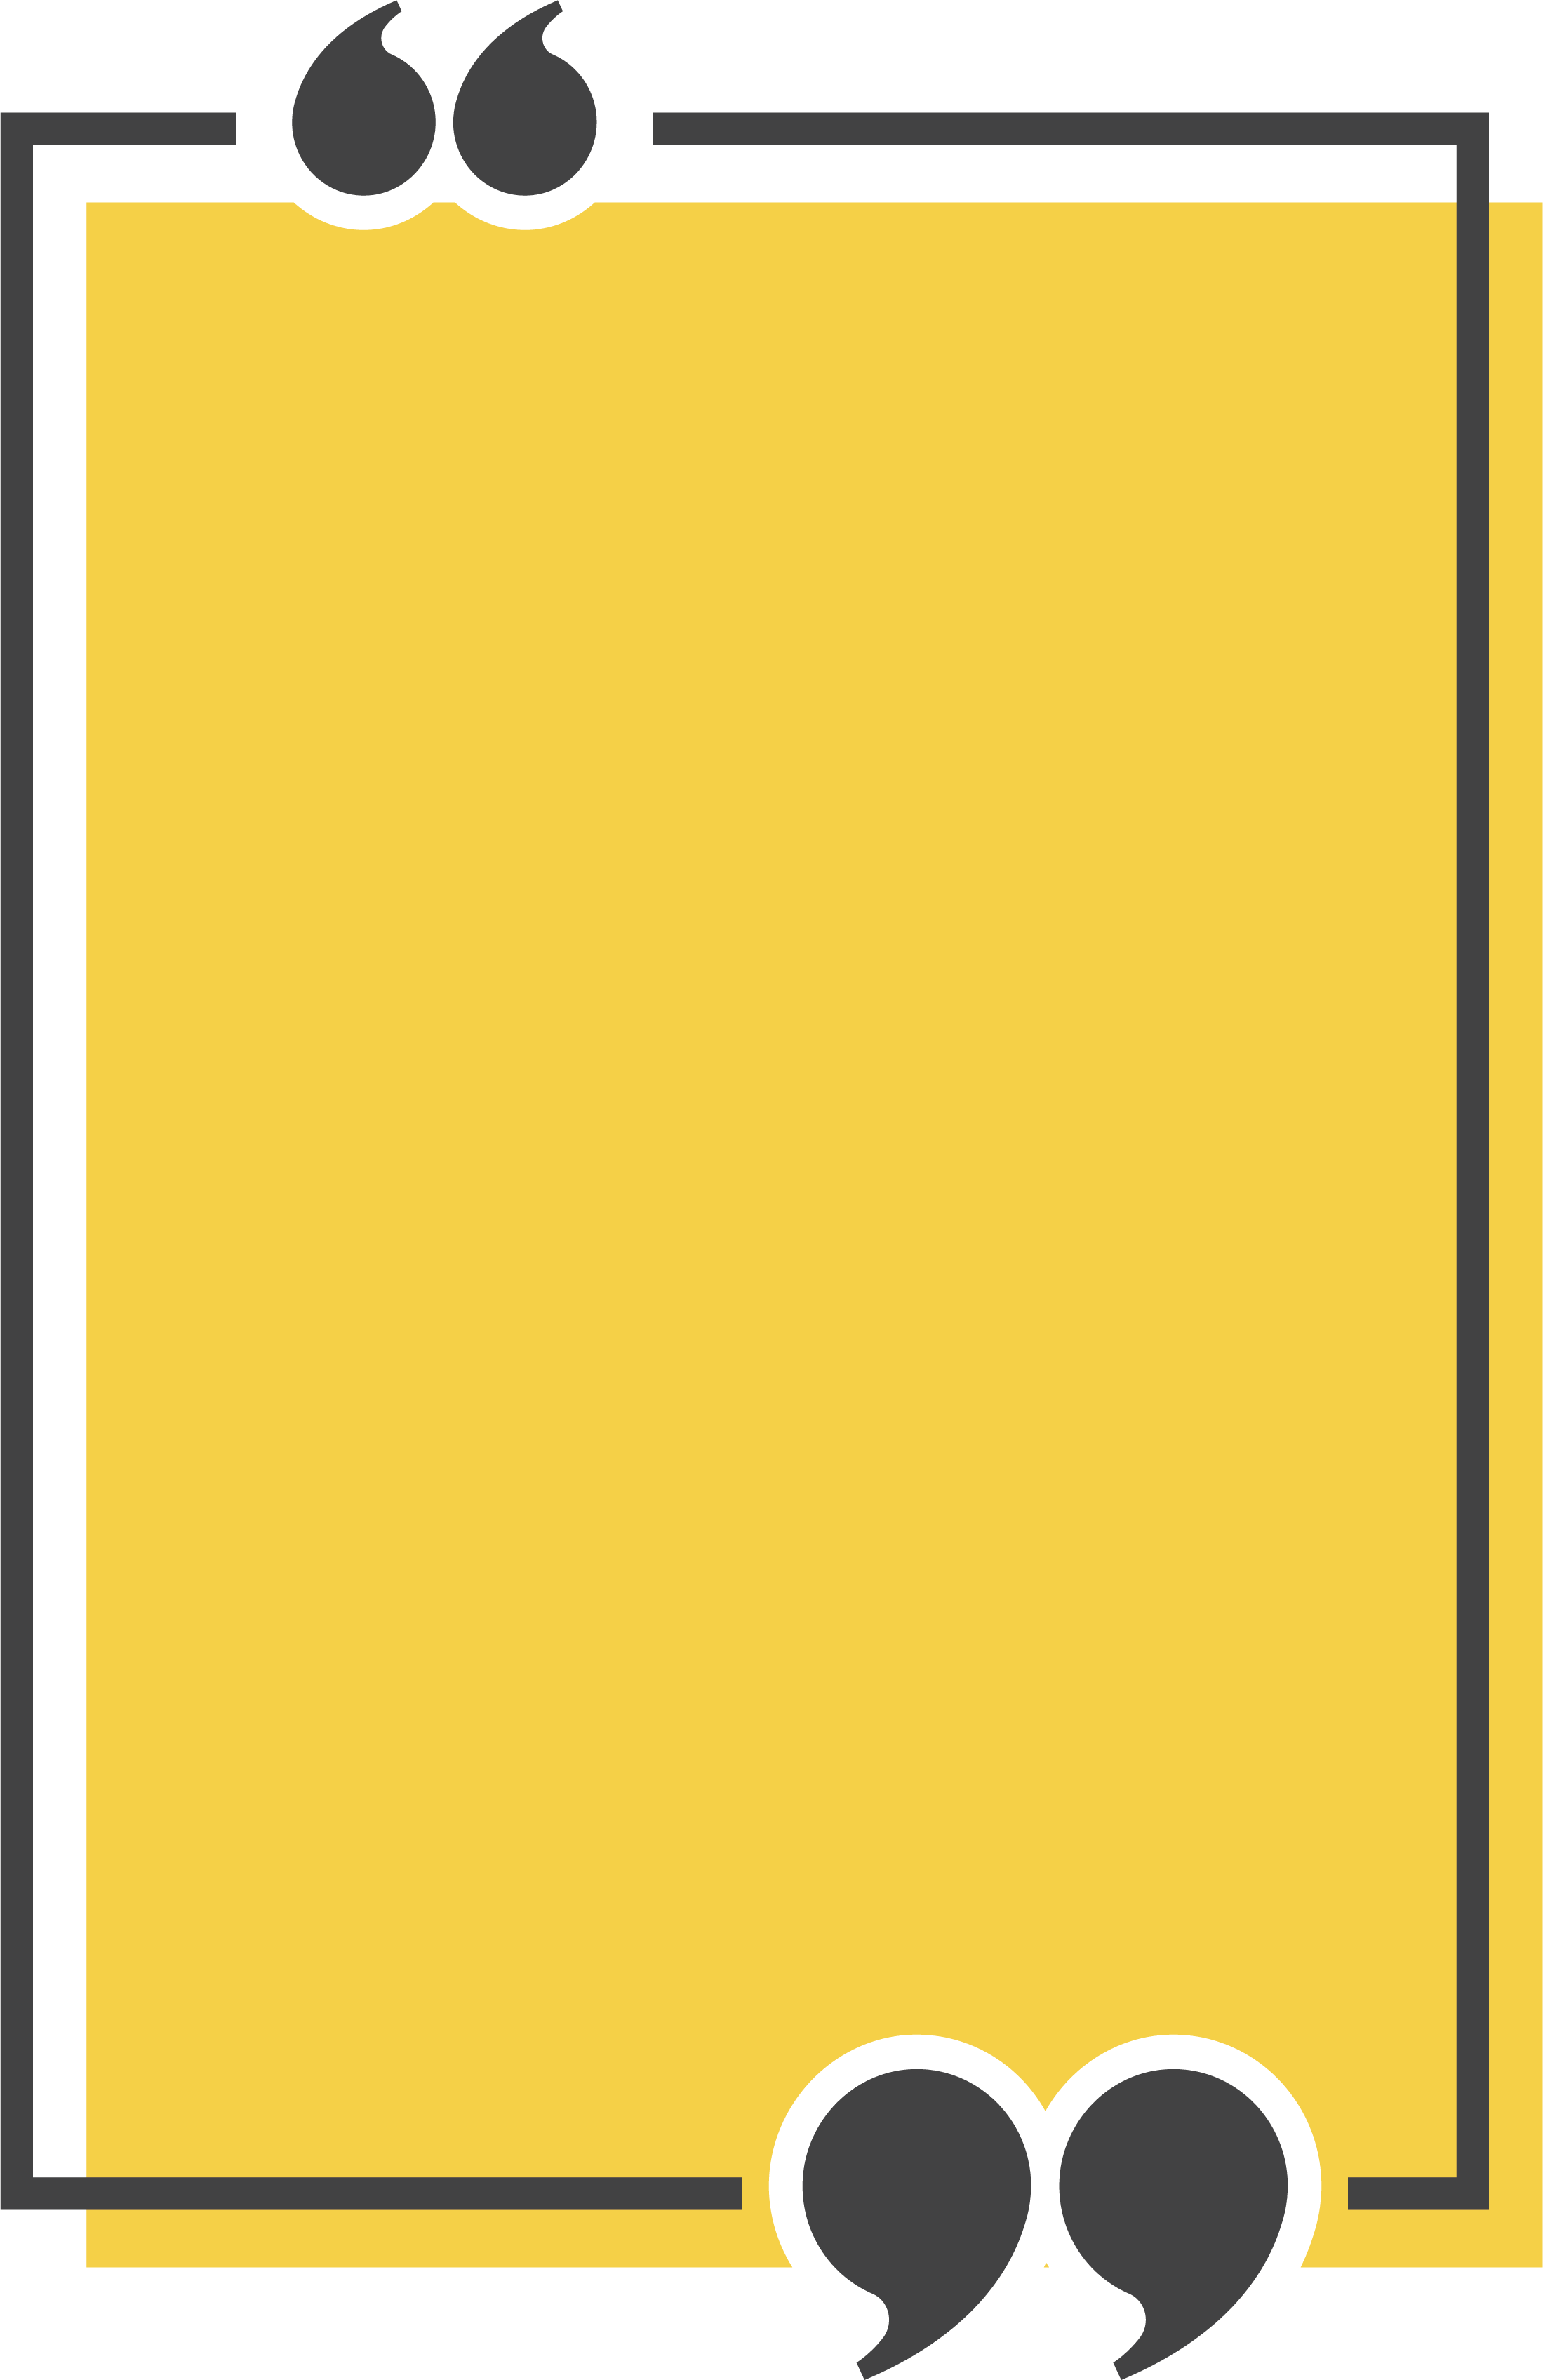 Square Box Png - HD Rectangle, Yellow, Computer Icons, Picture Frame, Product ...